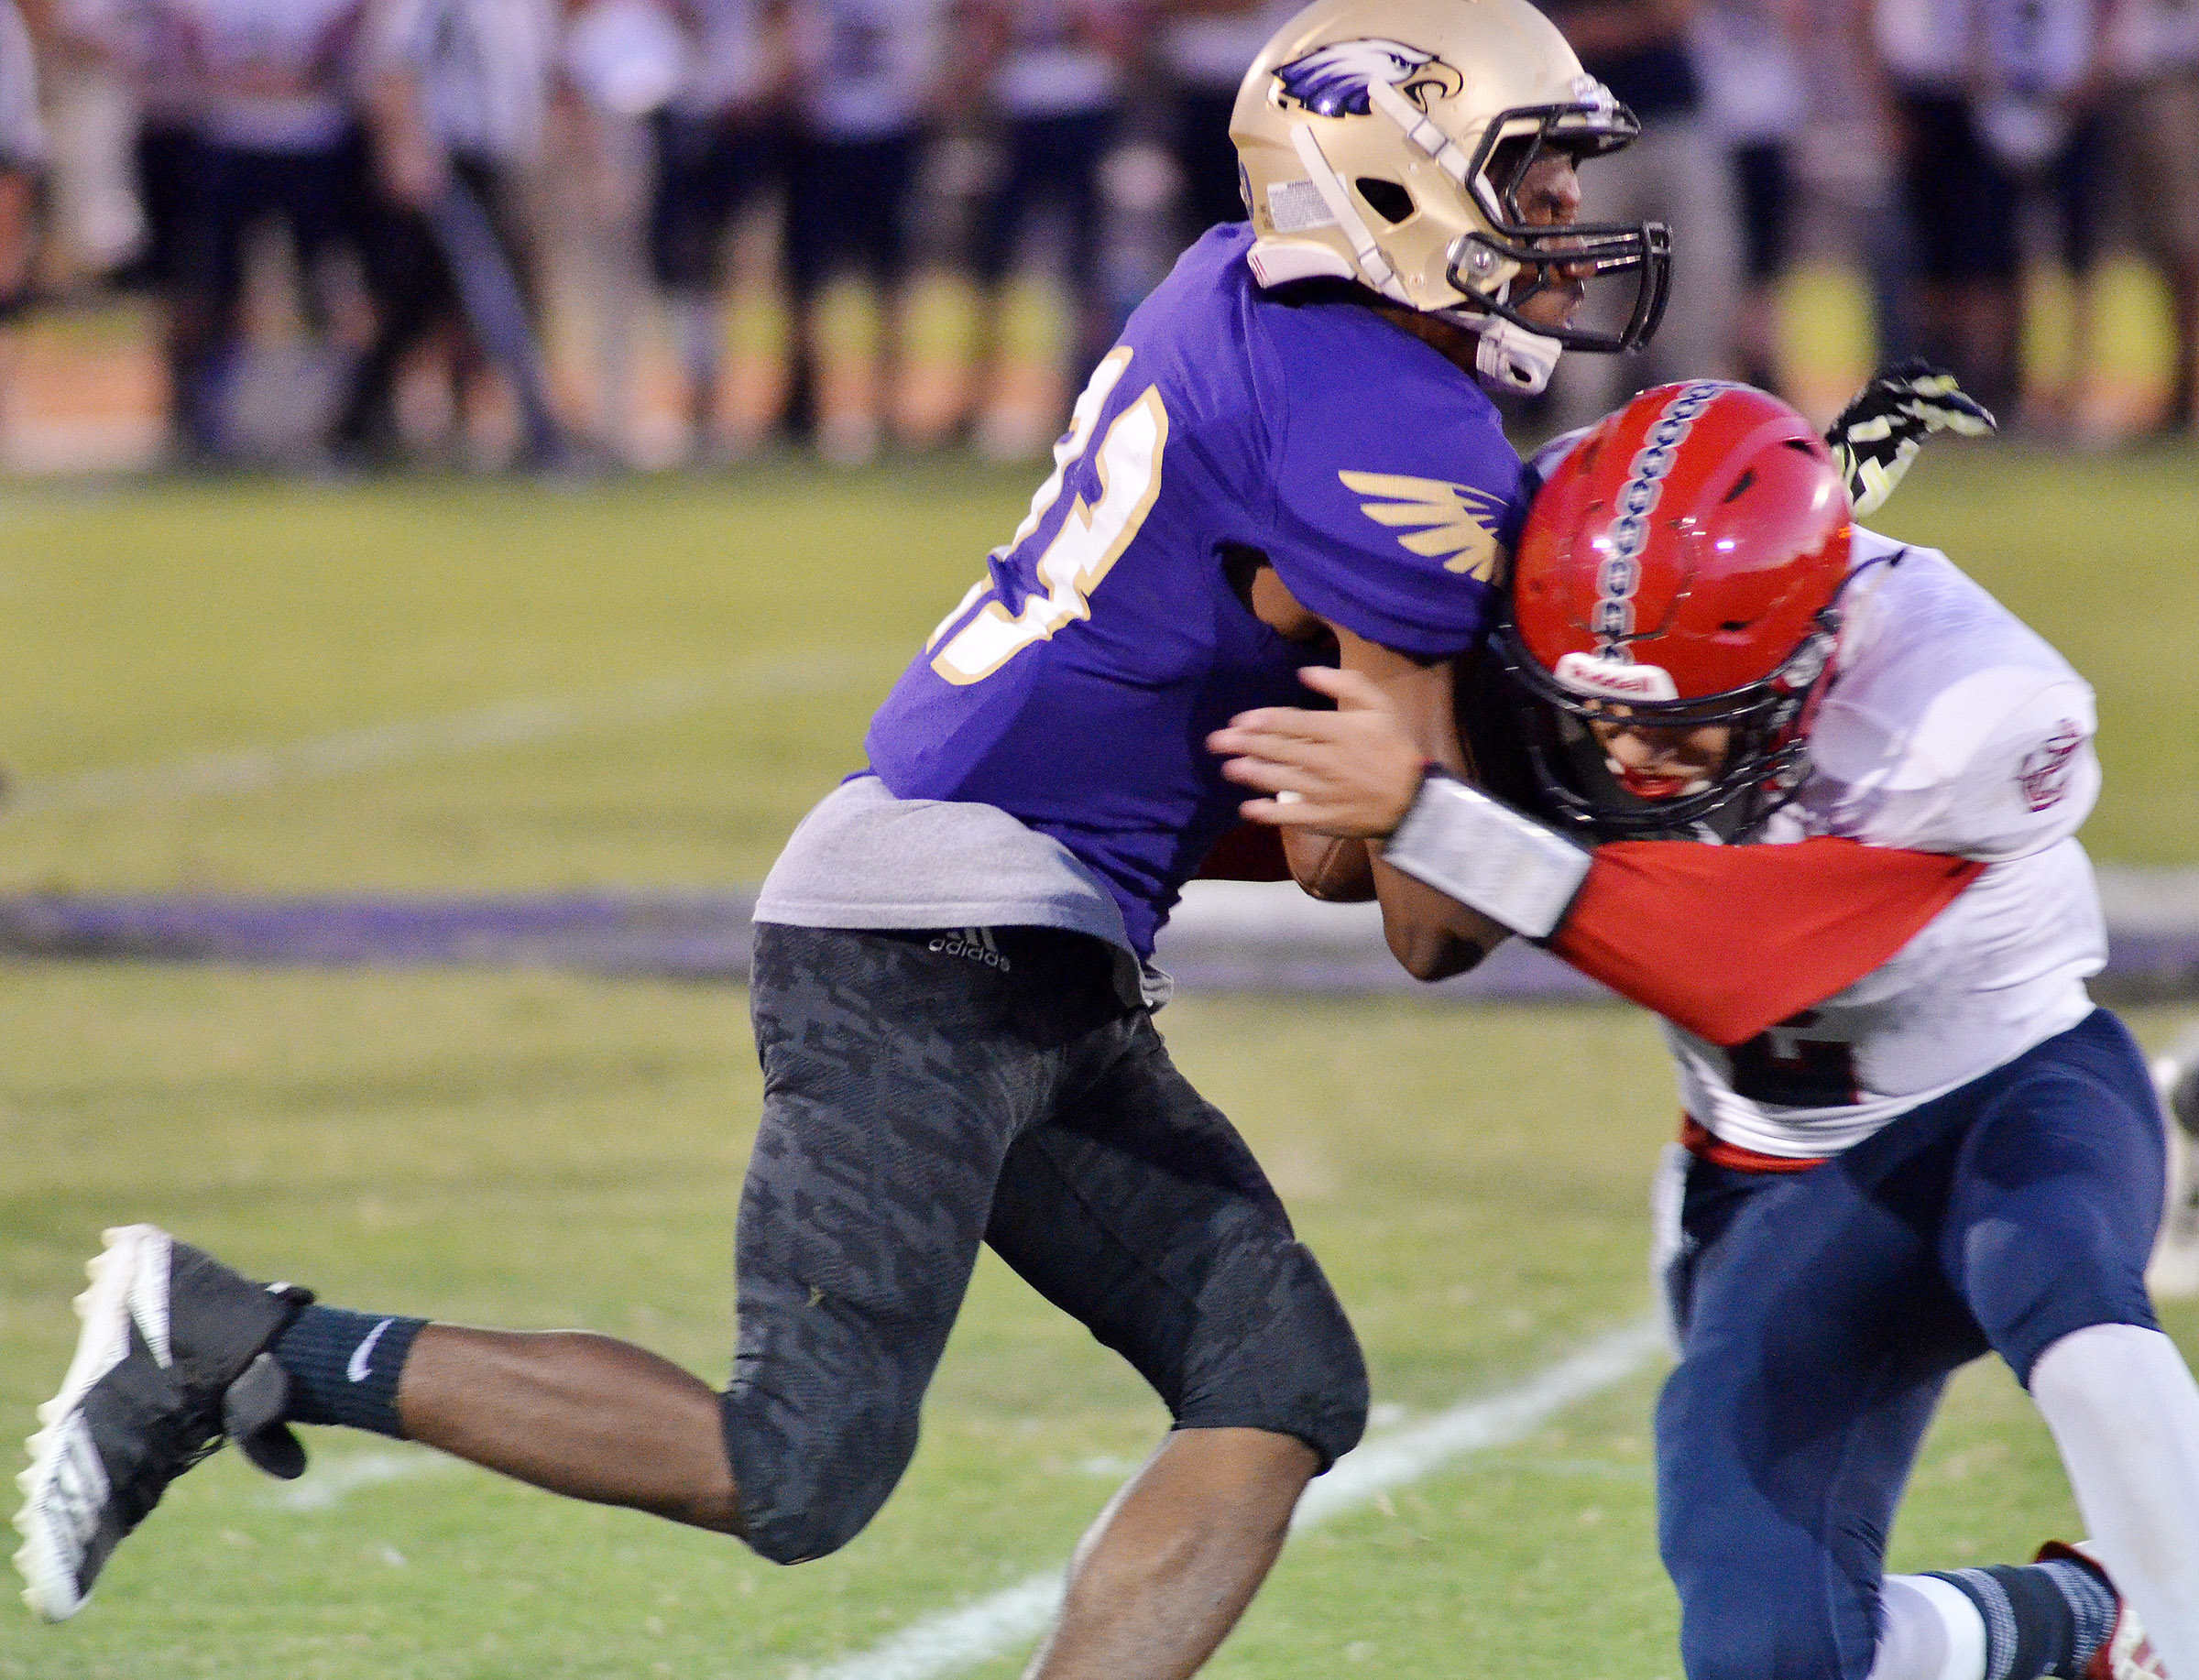 CHS senior Tyrion Taylor tackles.